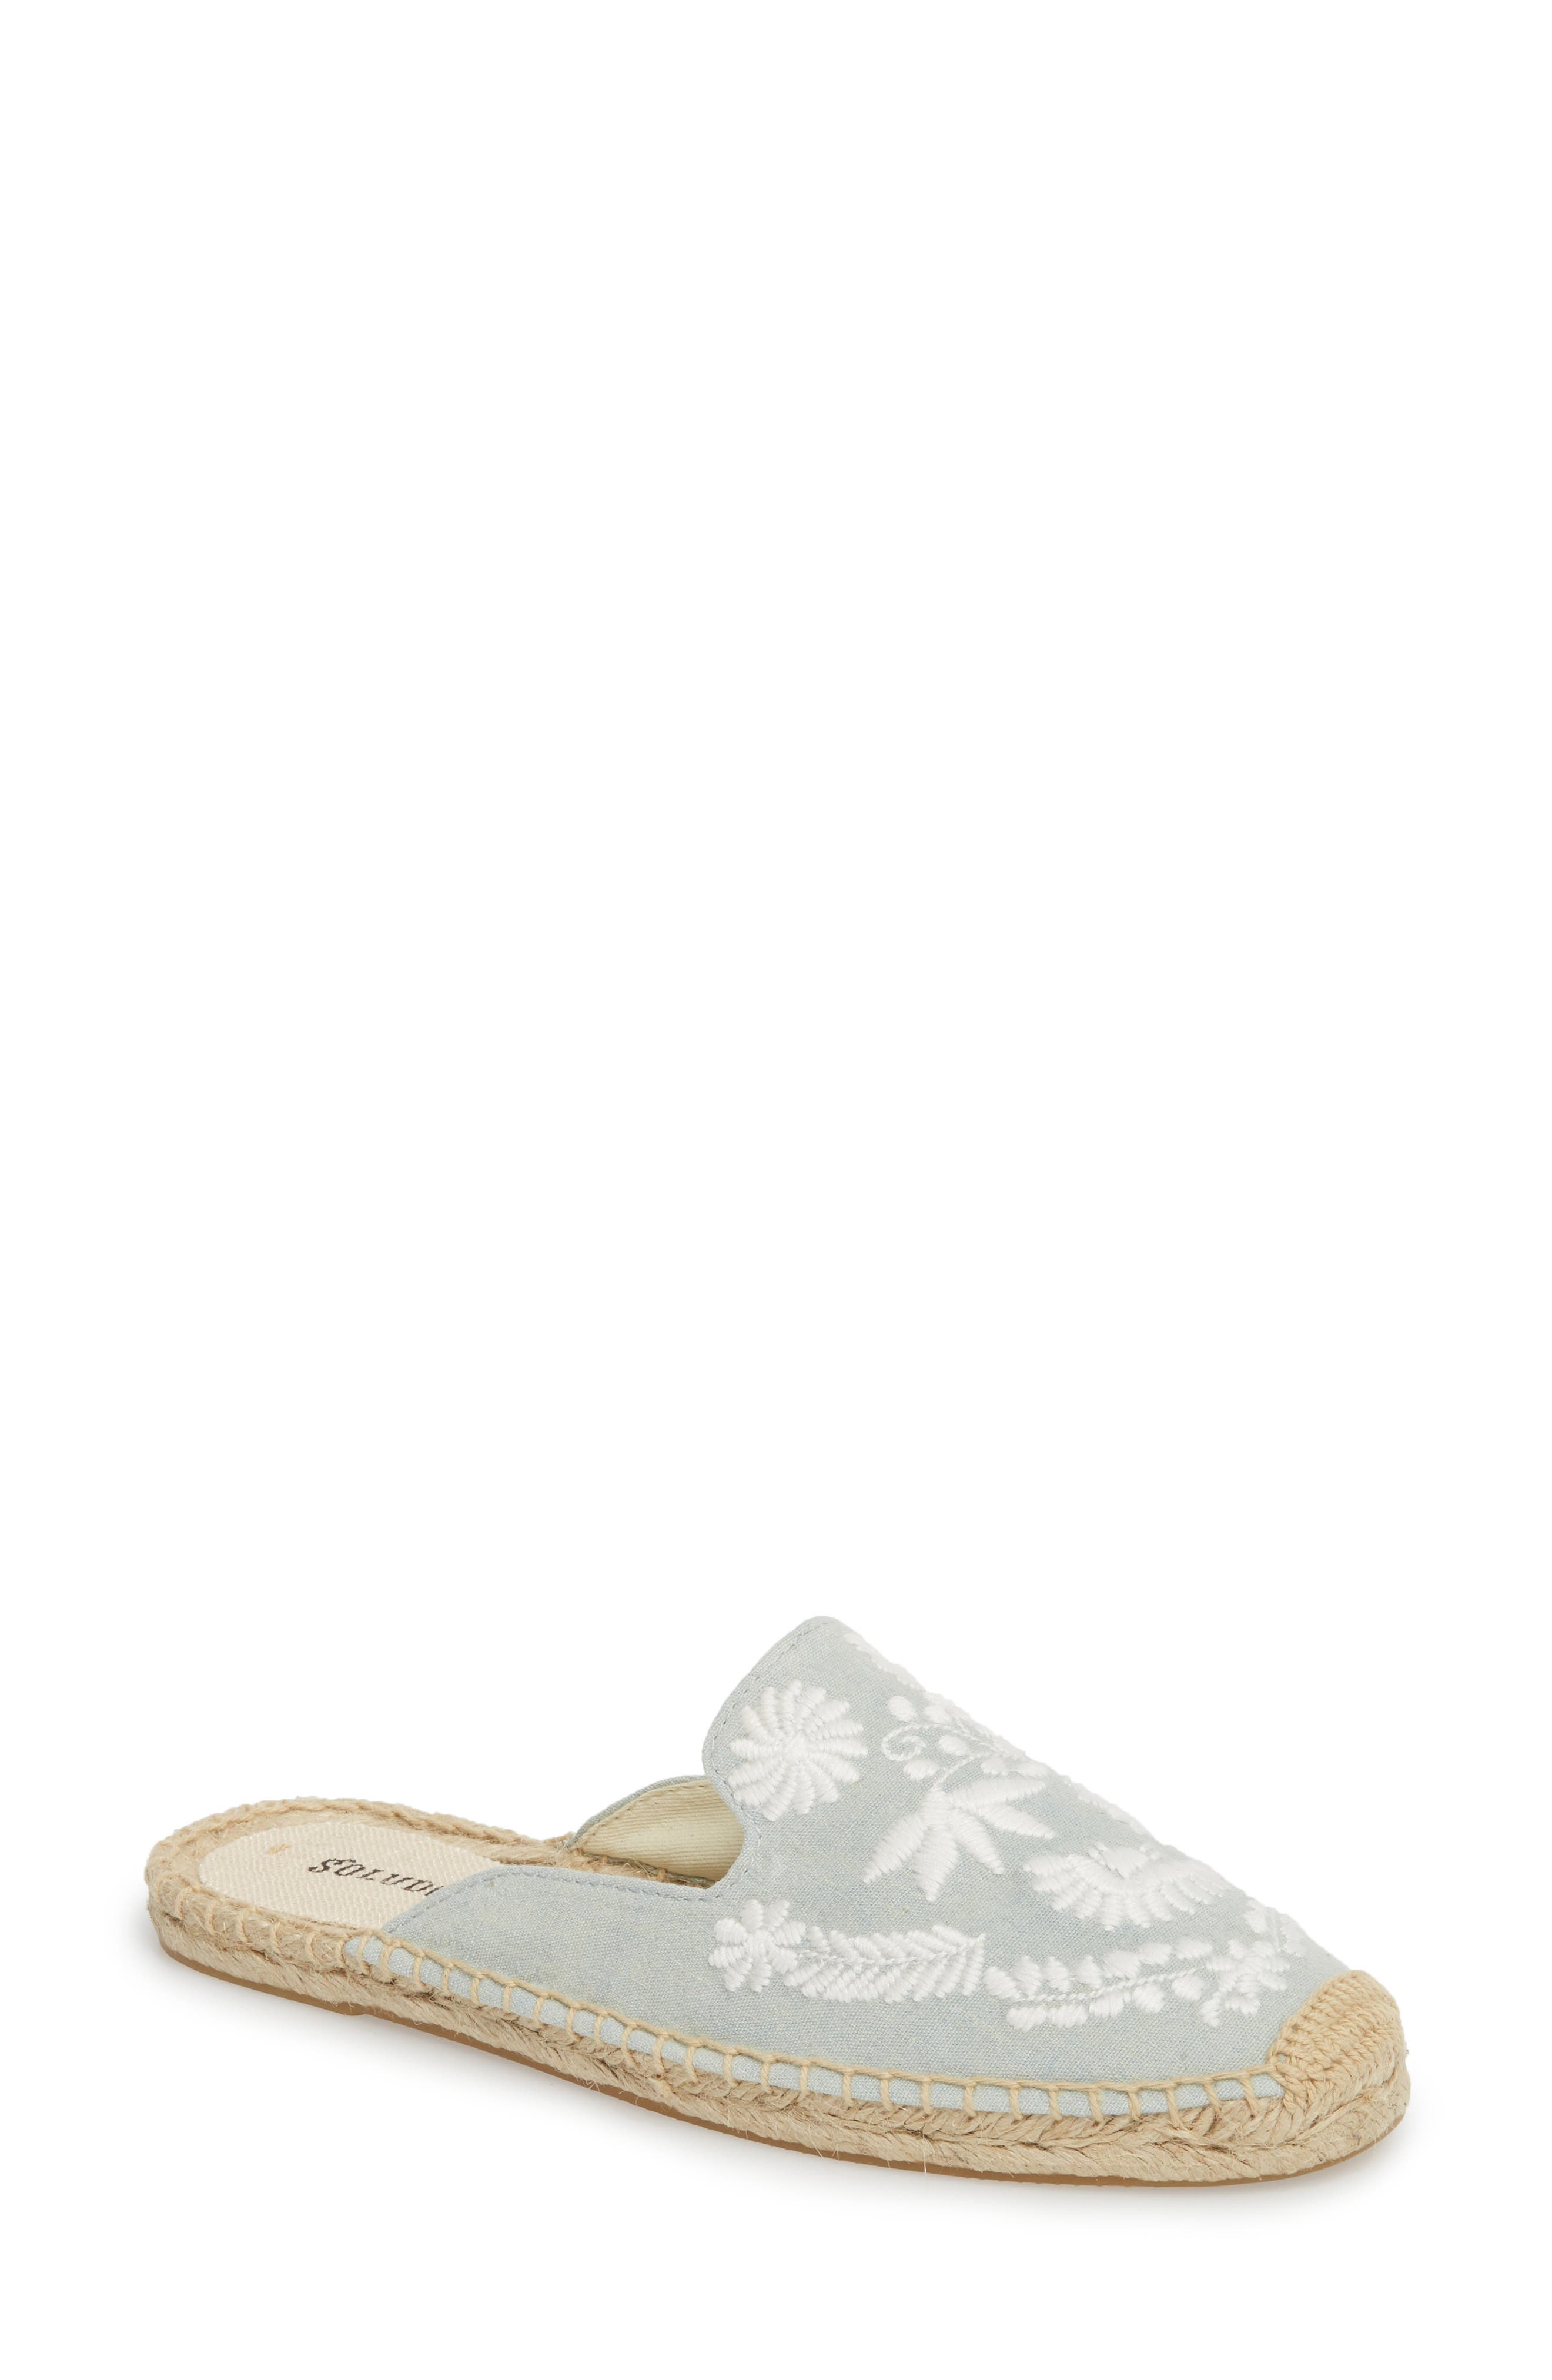 SOLUDOS IBIZA EMBROIDERED ESPADRILLE LOAFER MULE